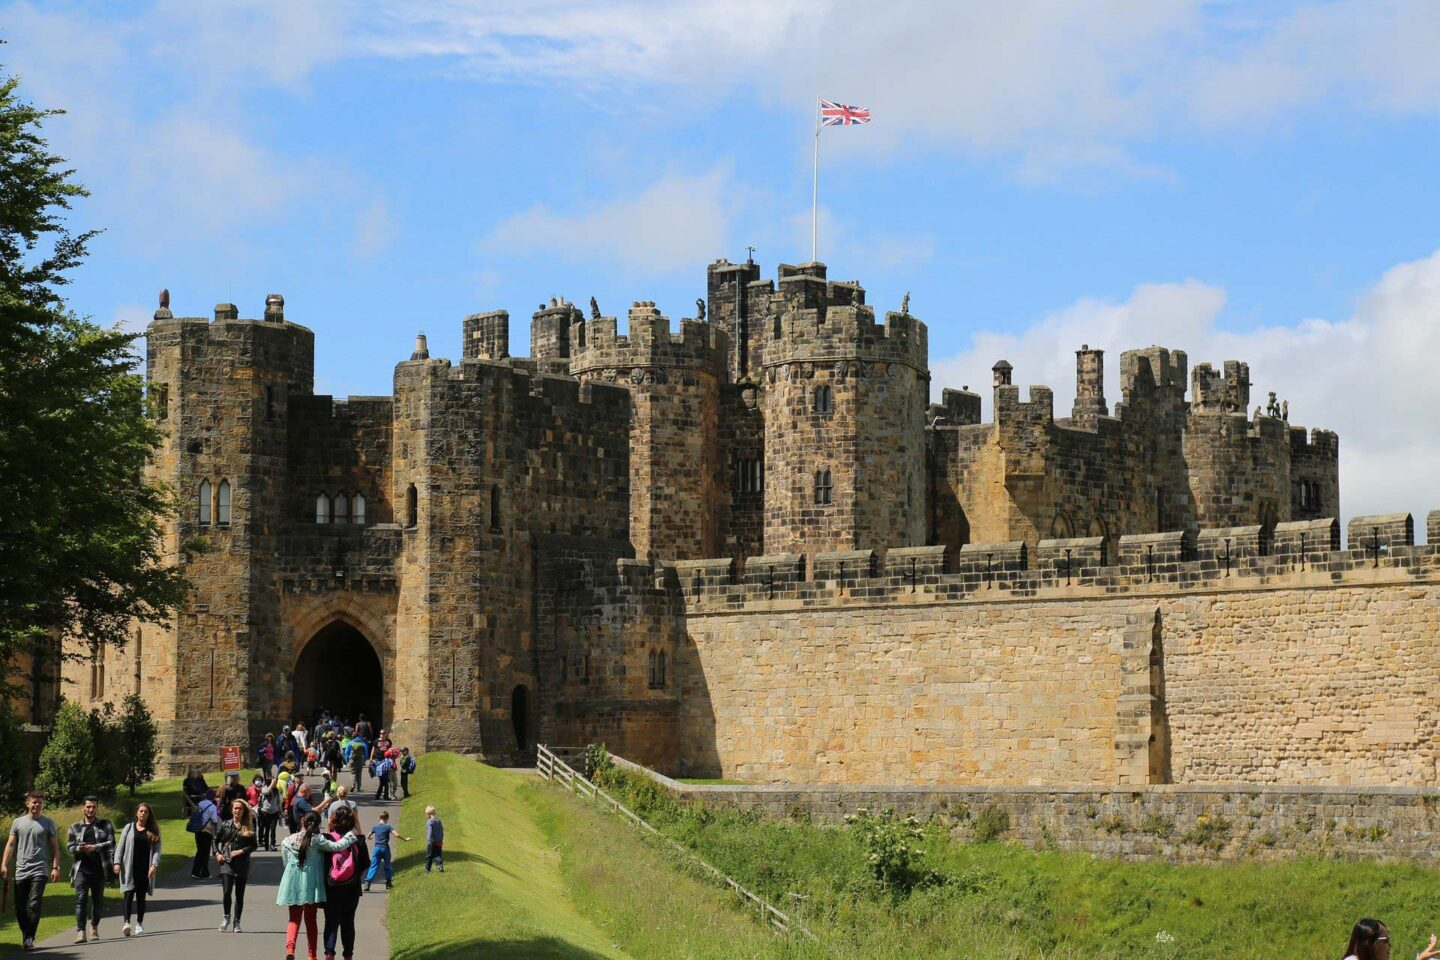 The entrance of Alnwick Castle, the largest castle in Northumberland